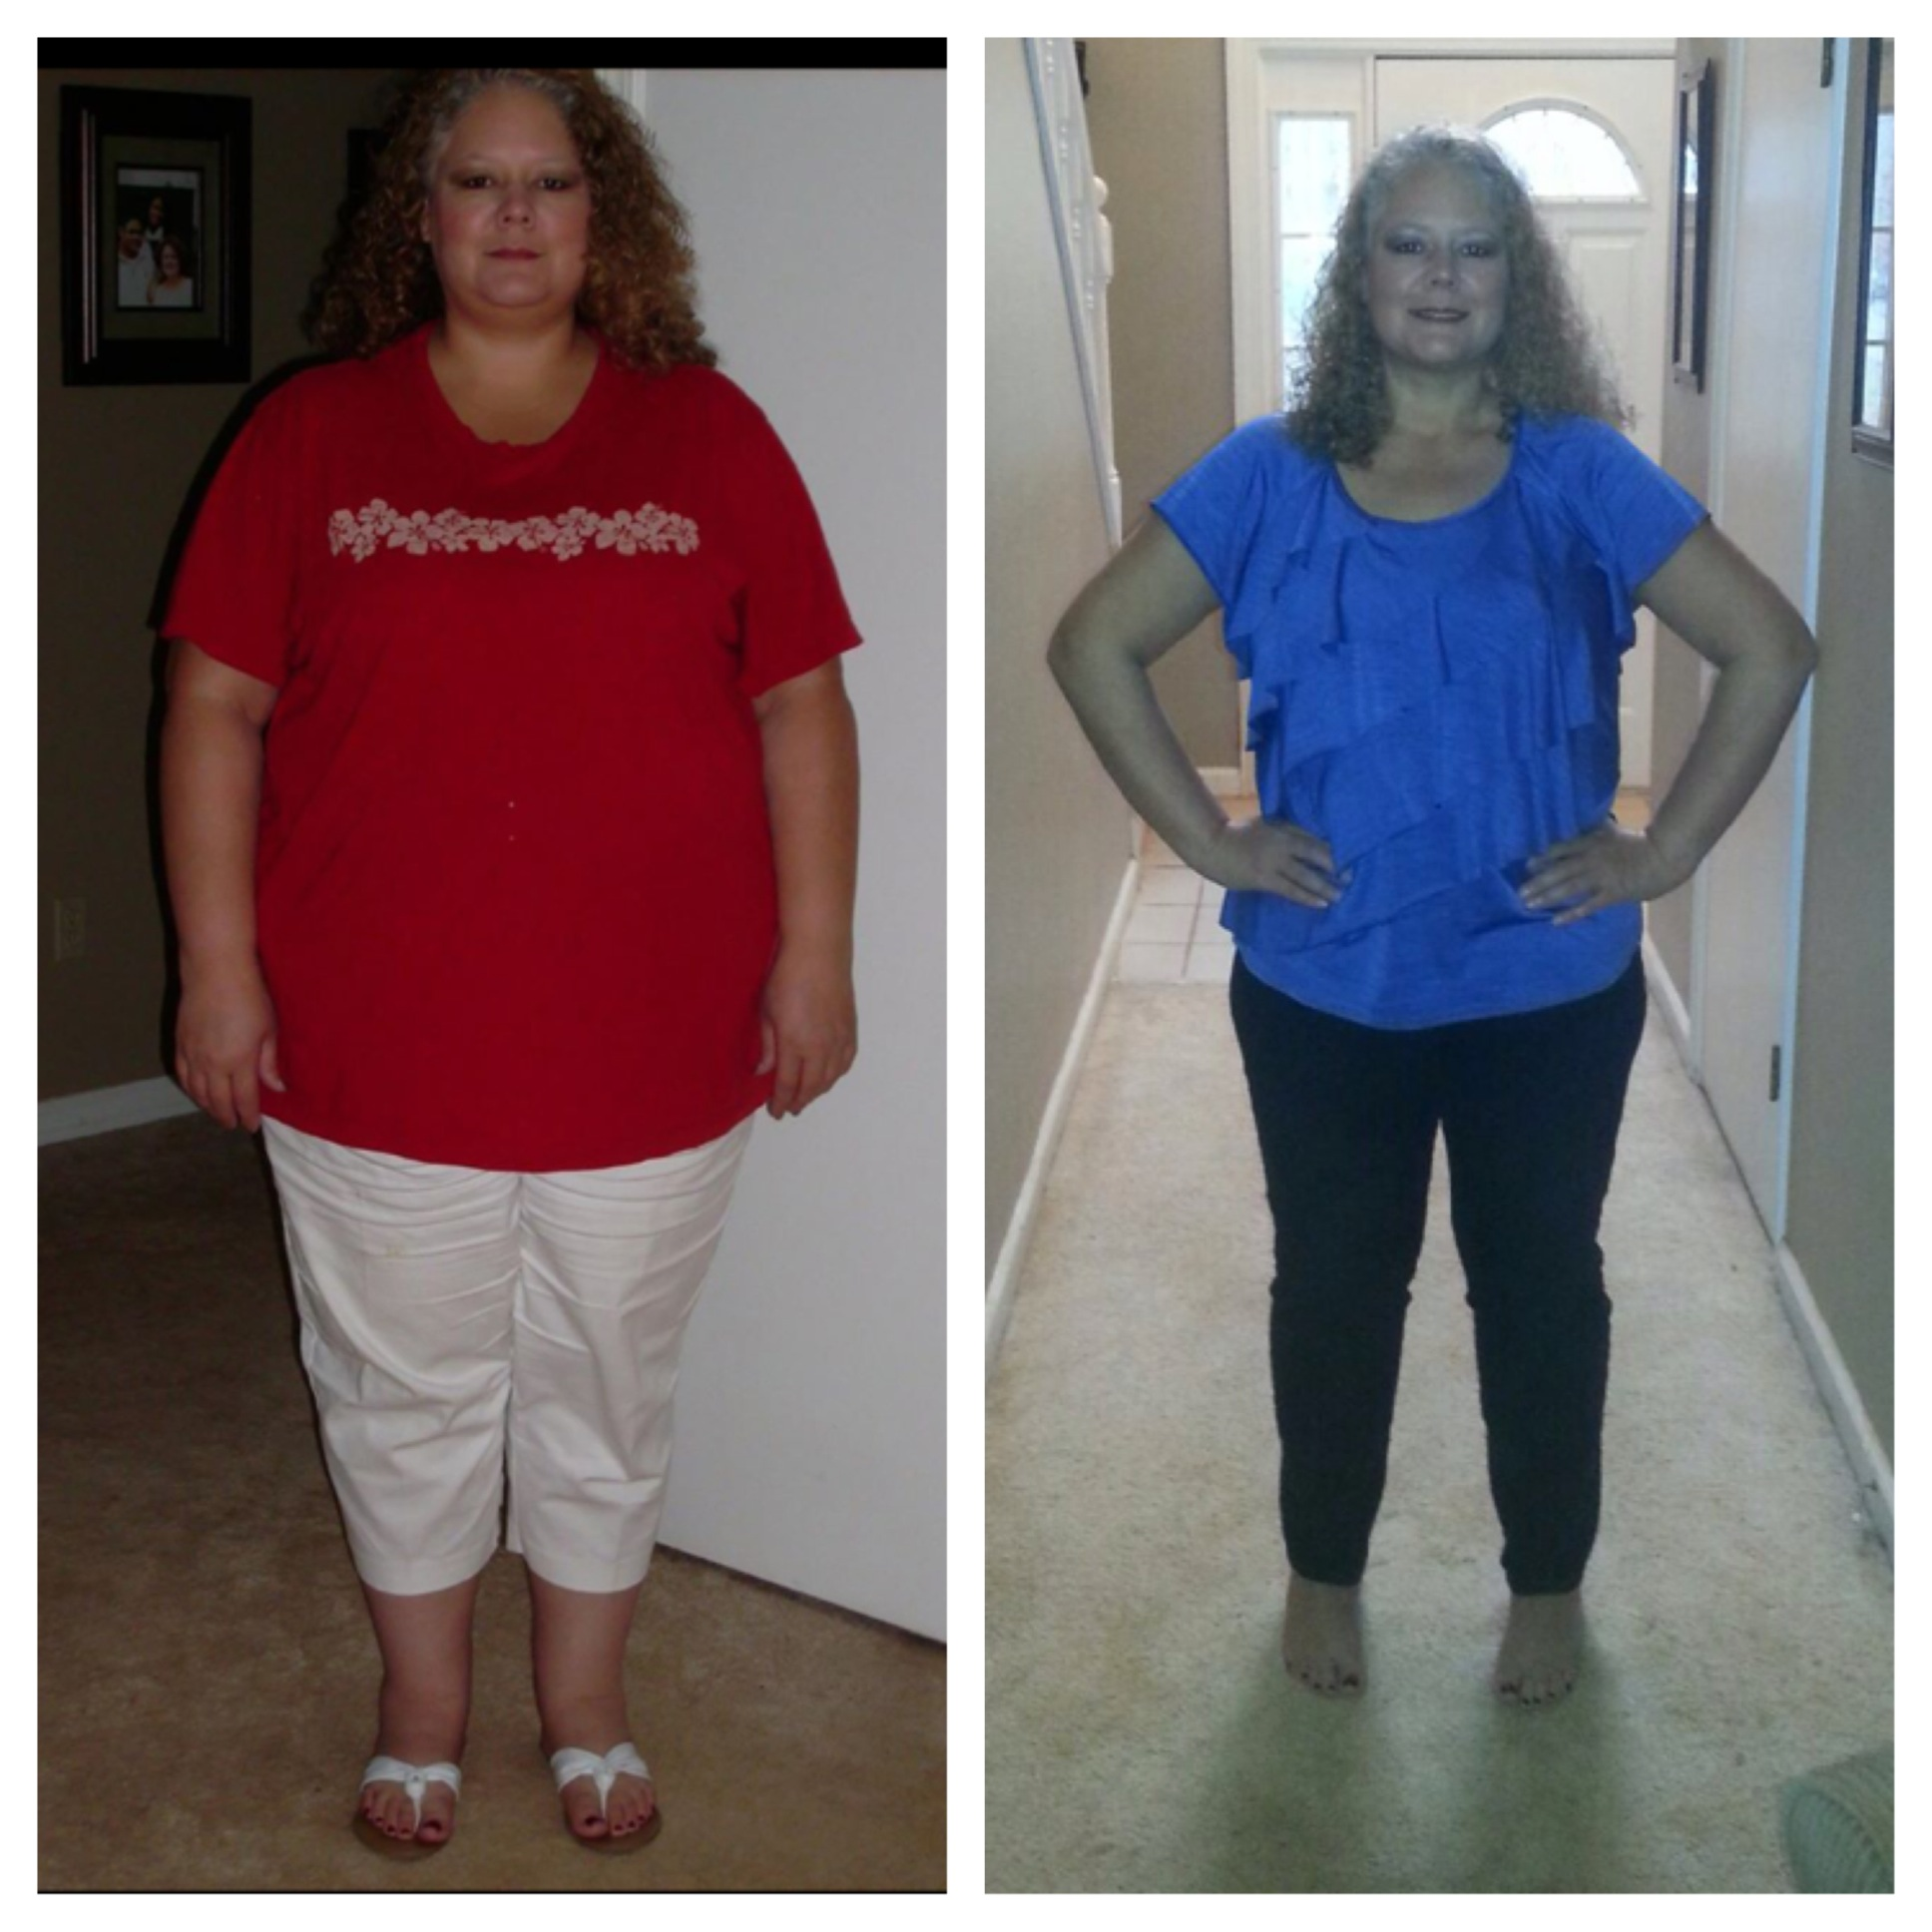 April lost 95 pounds! See my before and after weight loss pictures, and read amazing weight loss success stories from real women and their best weight loss diet plans and programs. Motivation to lose weight with walking and inspiration from before and after weightloss pics and photos.